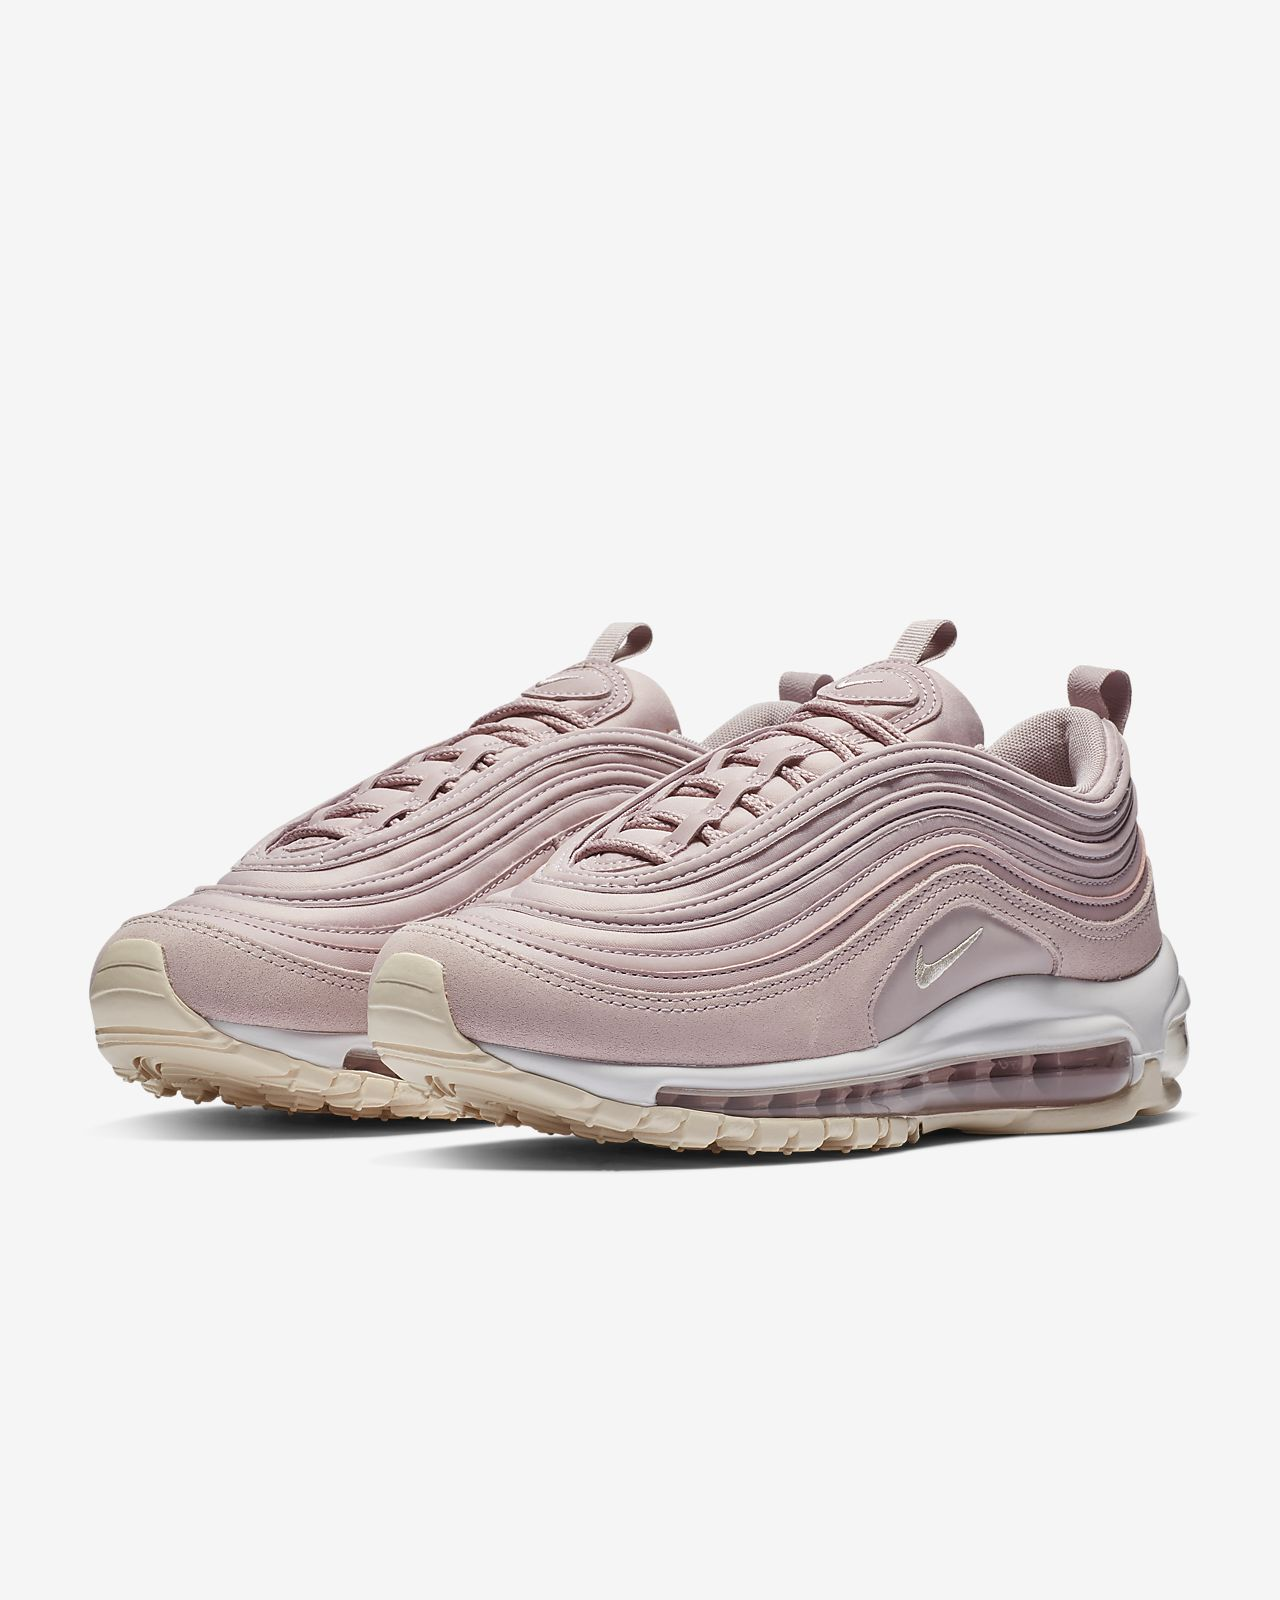 brand new 673a9 c3984 ... Nike Air Max 97 Premium Womens Shoe